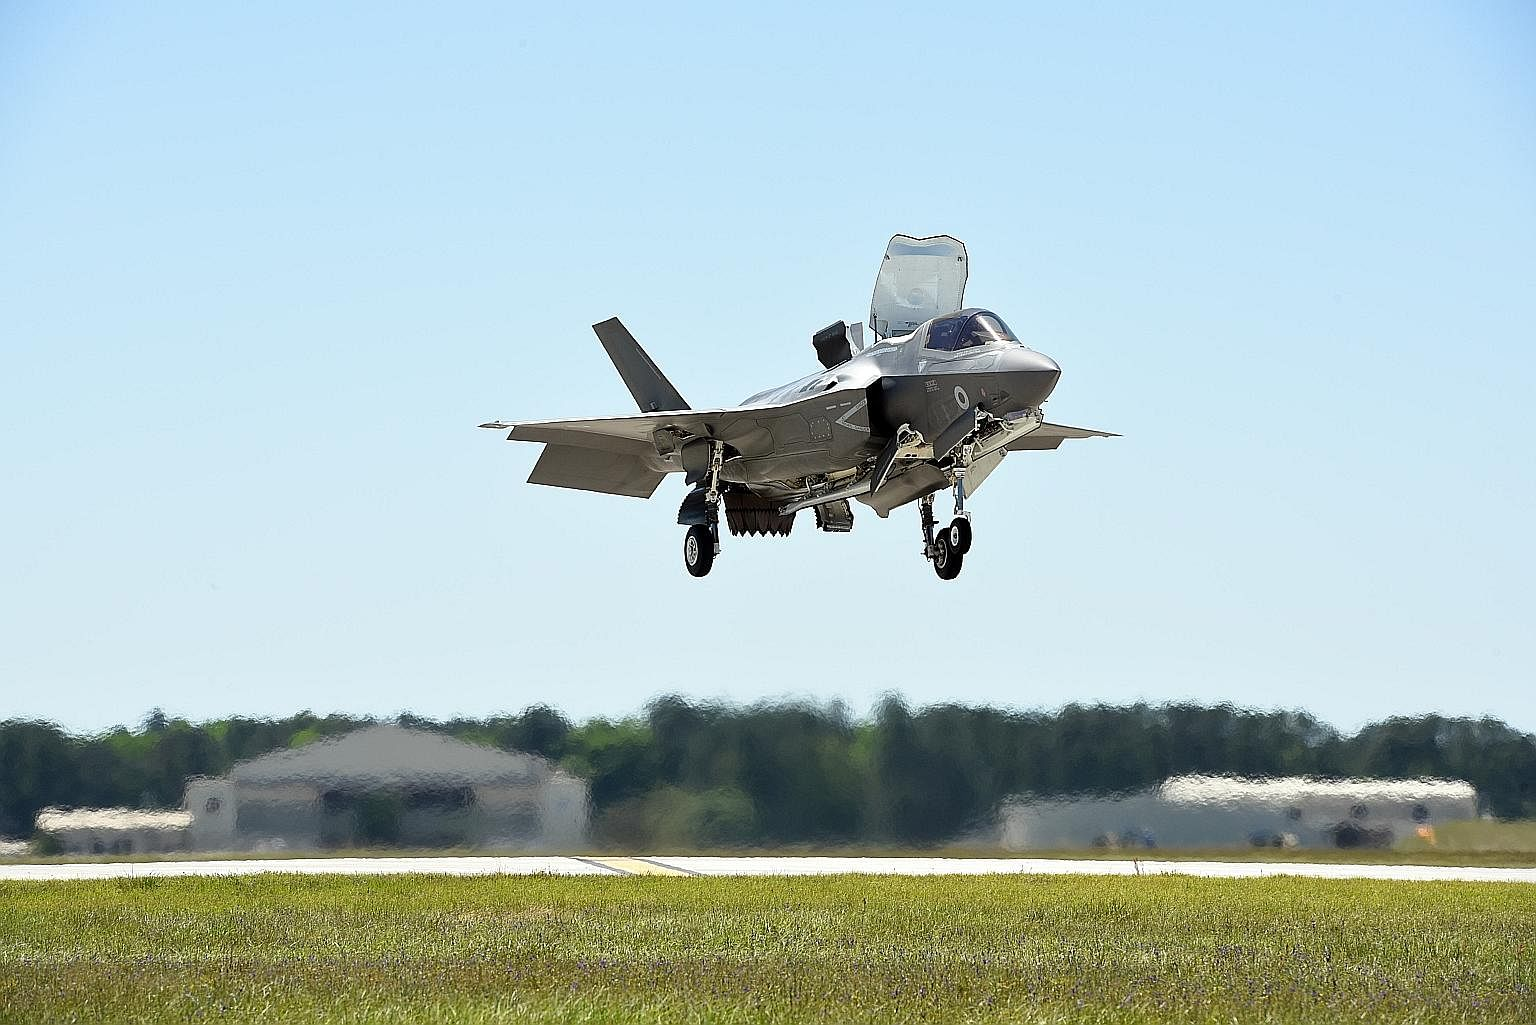 Singapore delaying decision on F-35 fighter purchase: Report